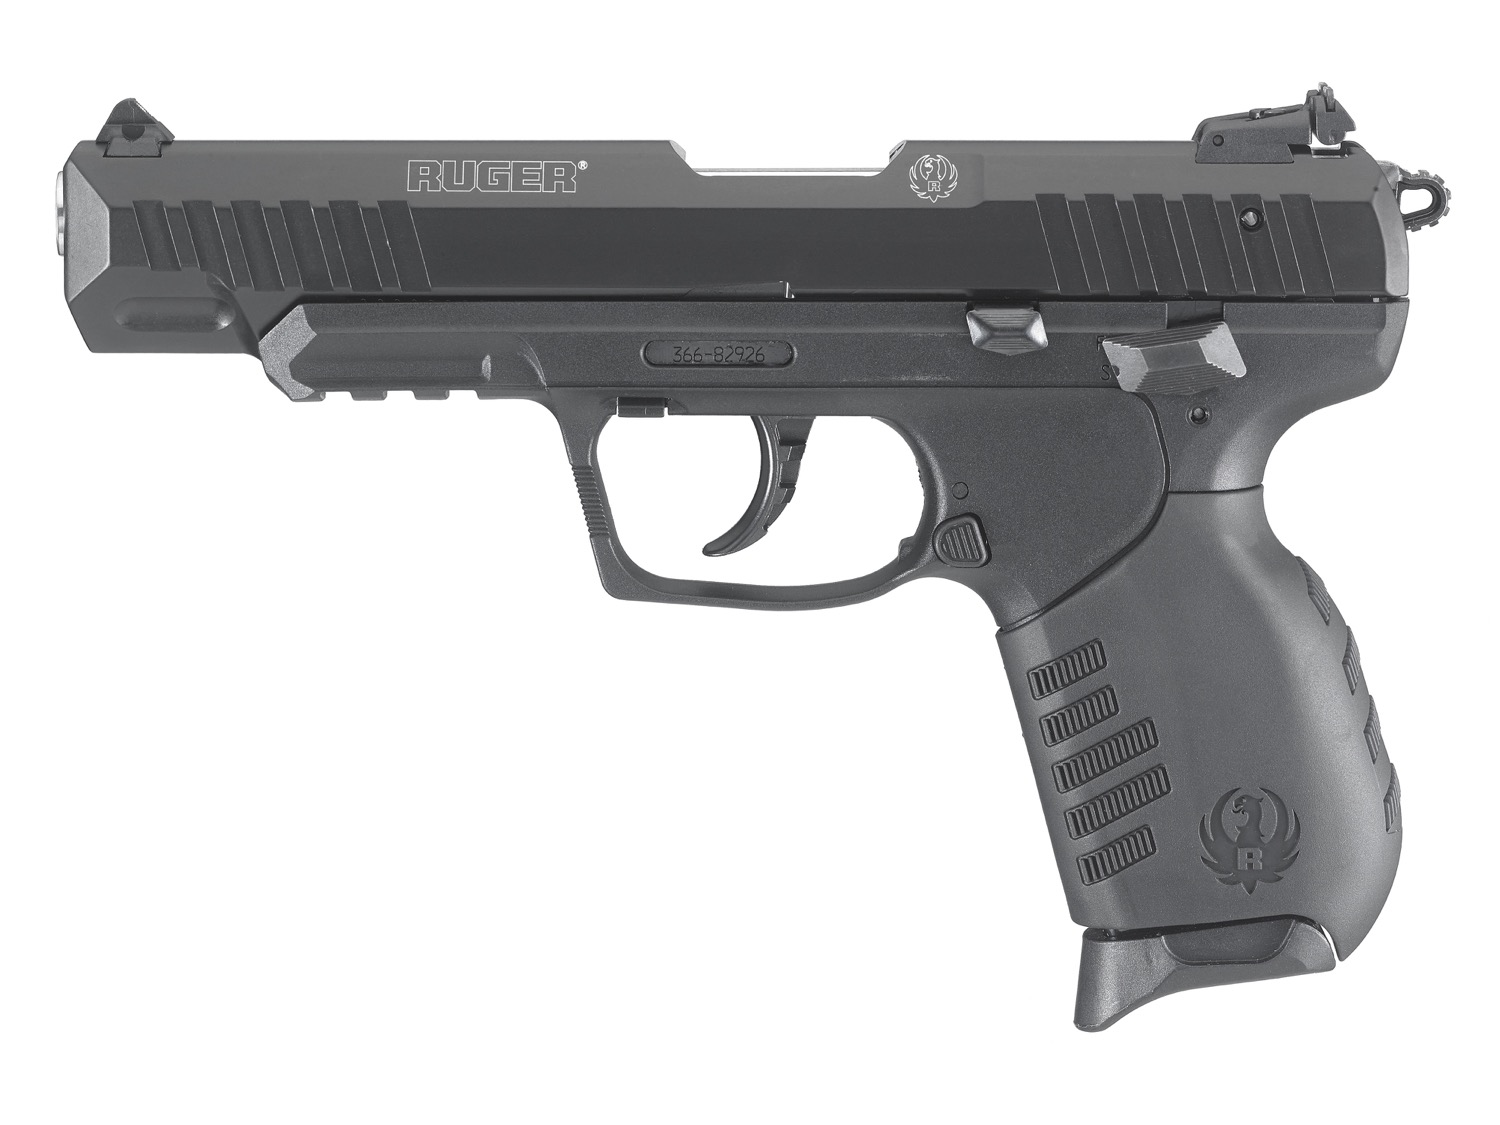 Ruger SR22 pistol with 4.5 inch barrel just $425 out-the-door!